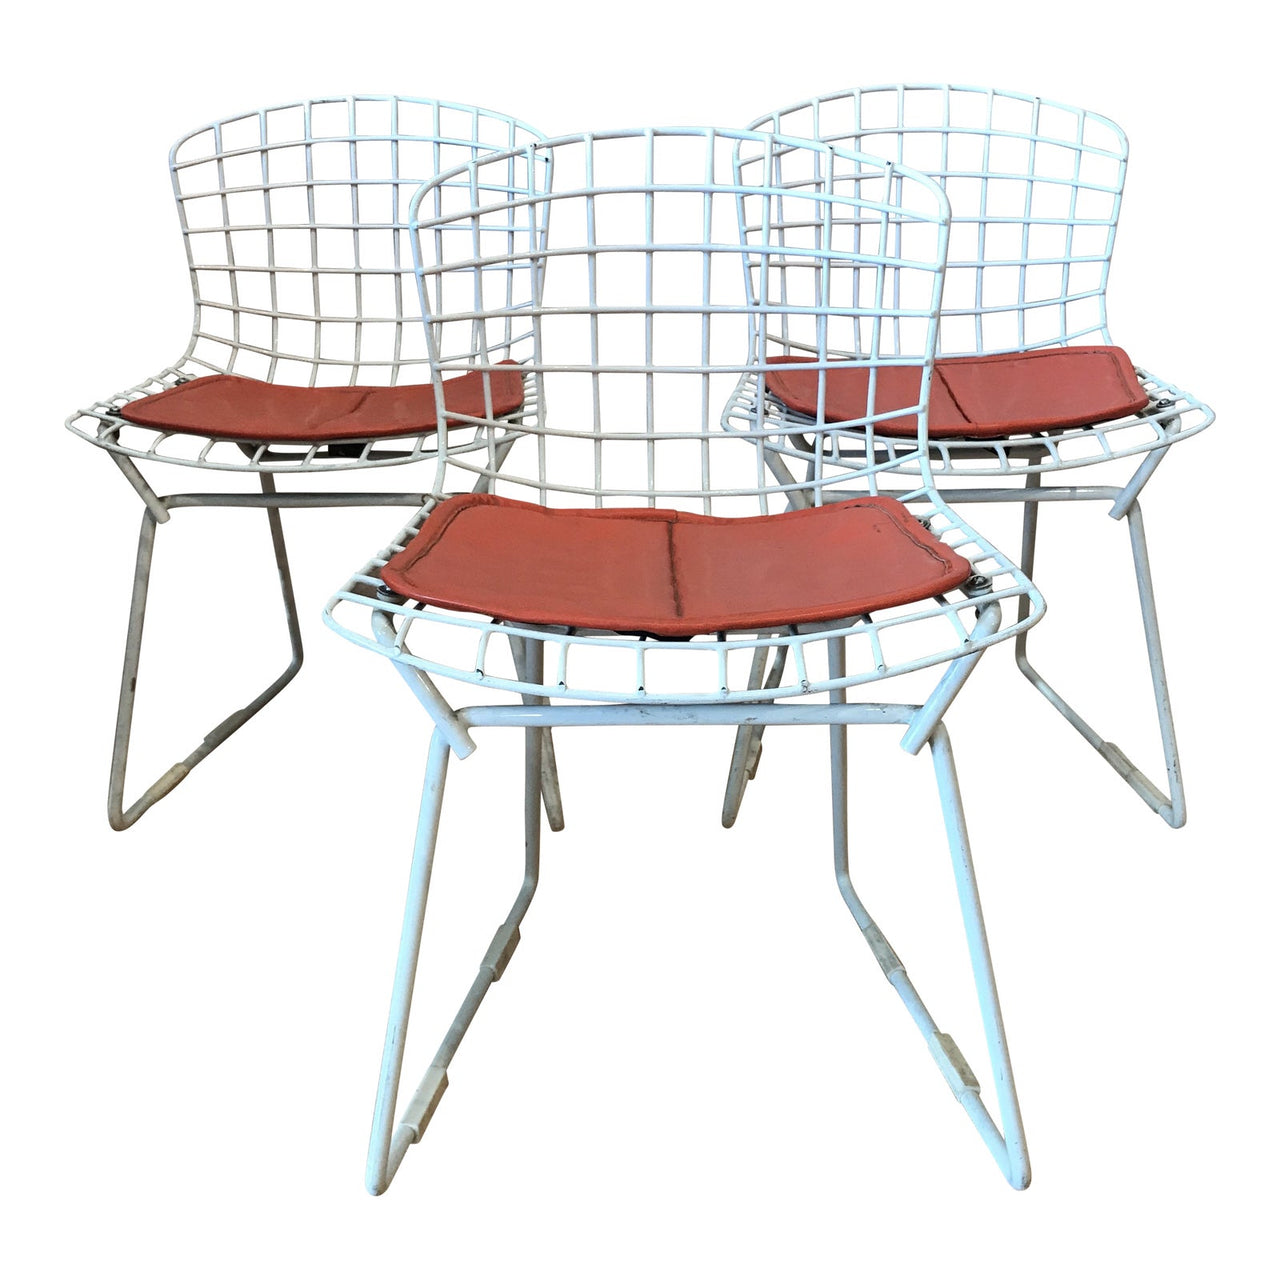 1950s Vintage Harry Bertoia for Knoll Child's Chairs - Set of 3 | touchGOODS